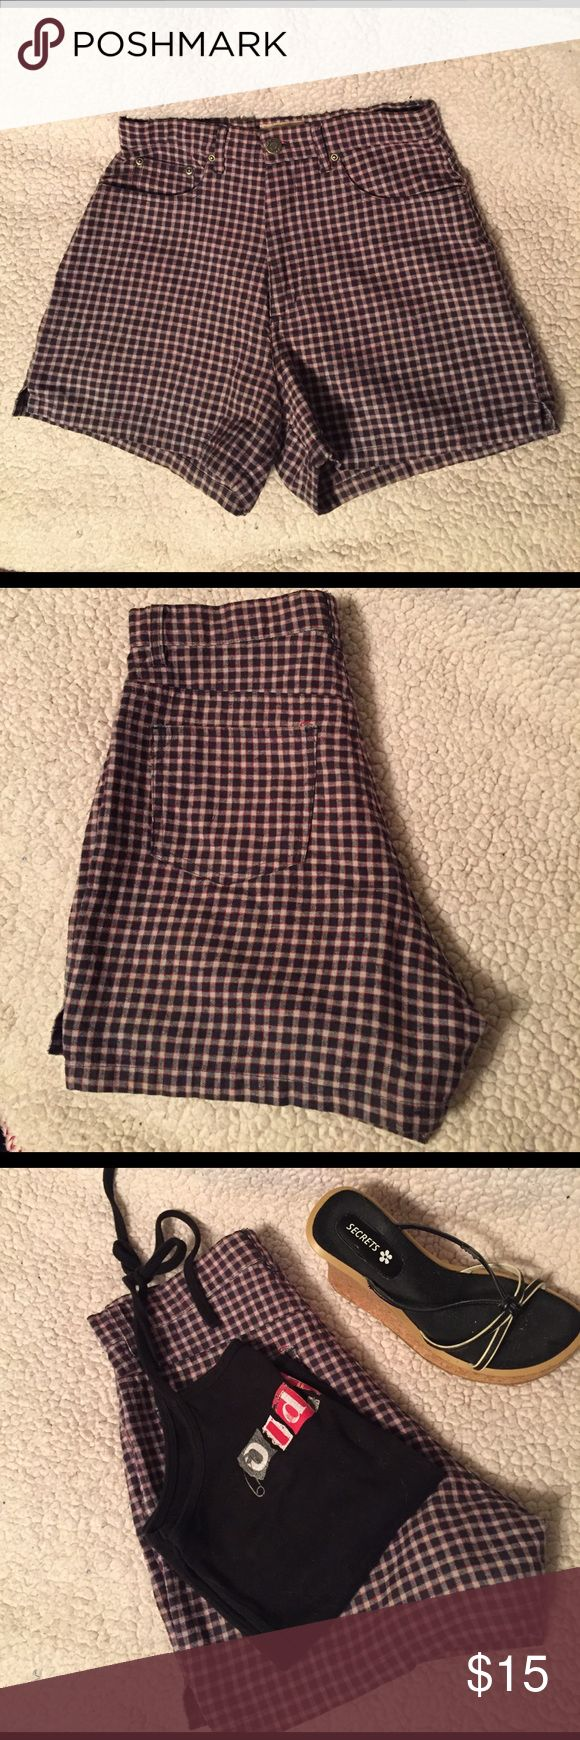 """⚡️SALE⚡️Shorts, County Seat, Black & Red plaid Vintage 90s County Seat shorts,  Black and red plaid.  Zip fly with one button and pockets. Waist is 26"""" and length is 13-1/2"""".  Great condition. County Seat Shorts"""